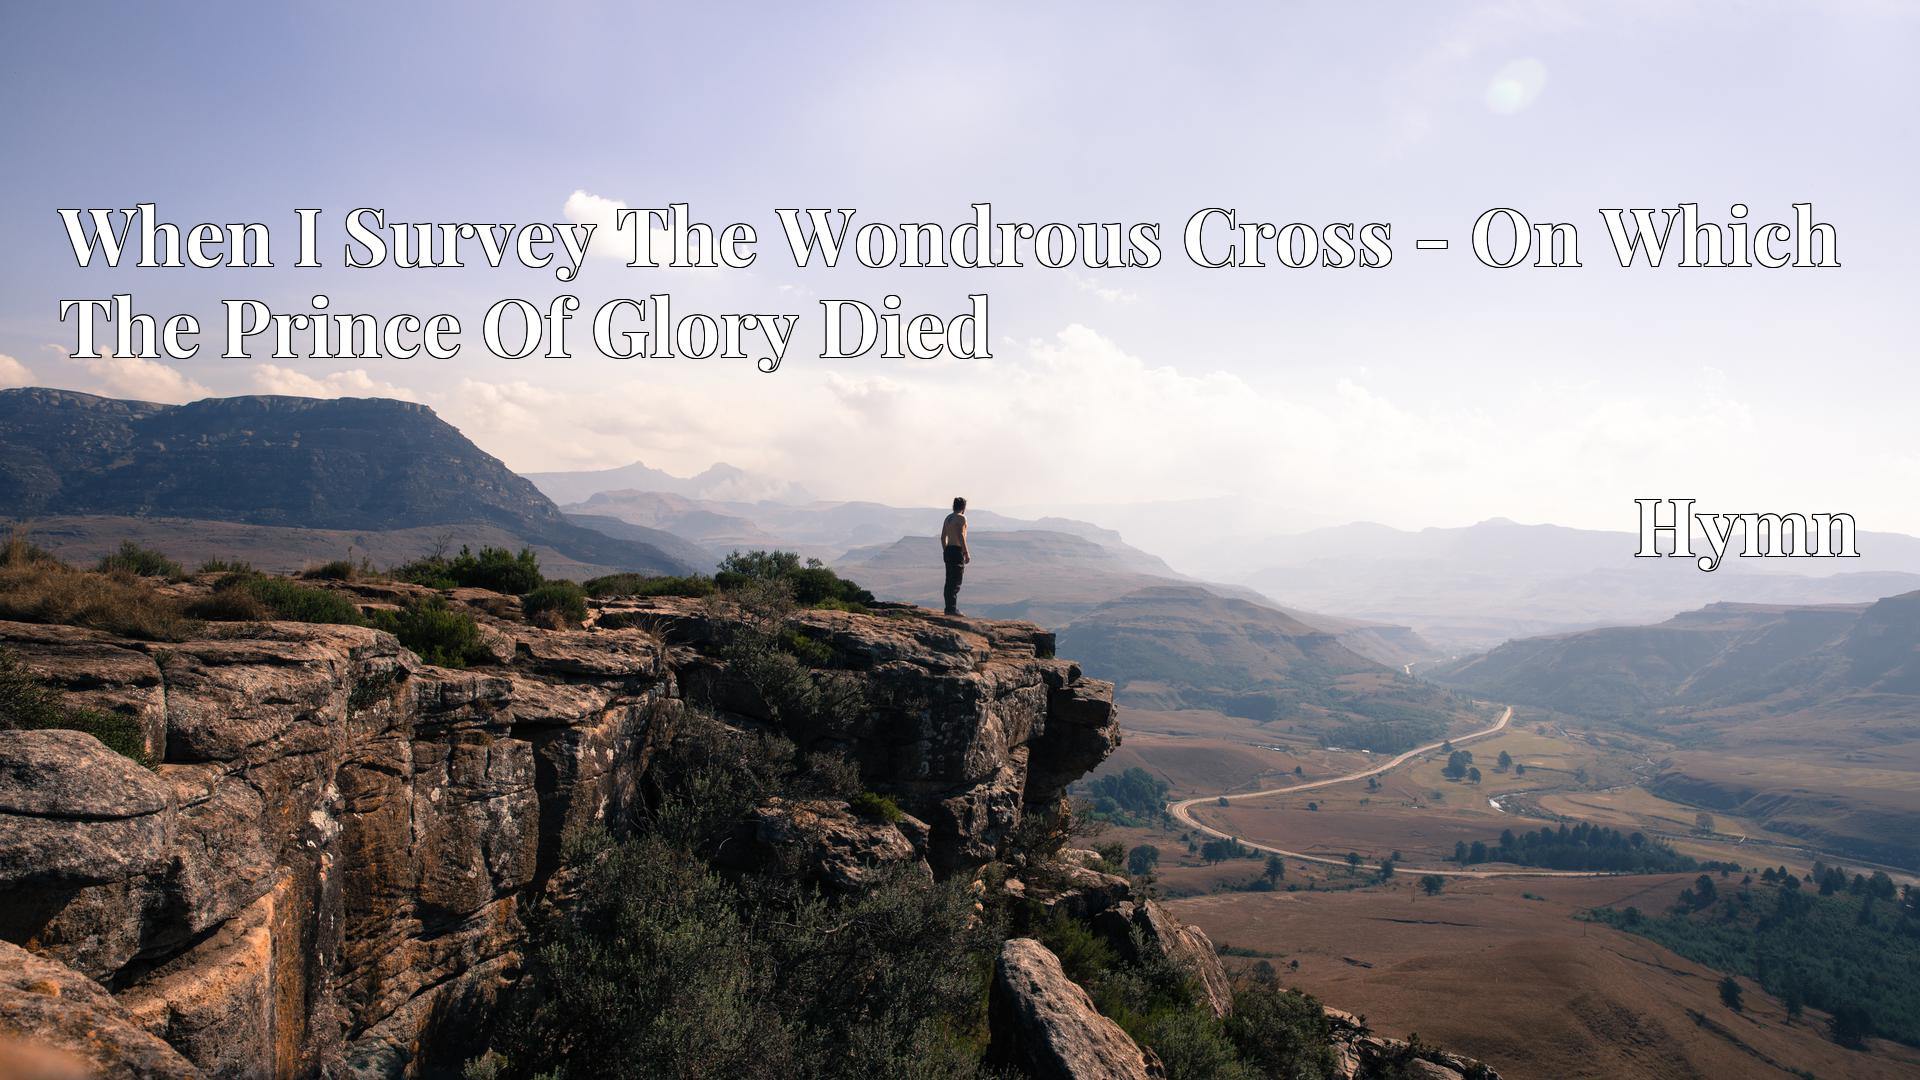 When I Survey The Wondrous Cross - On Which The Prince Of Glory Died - Hymn